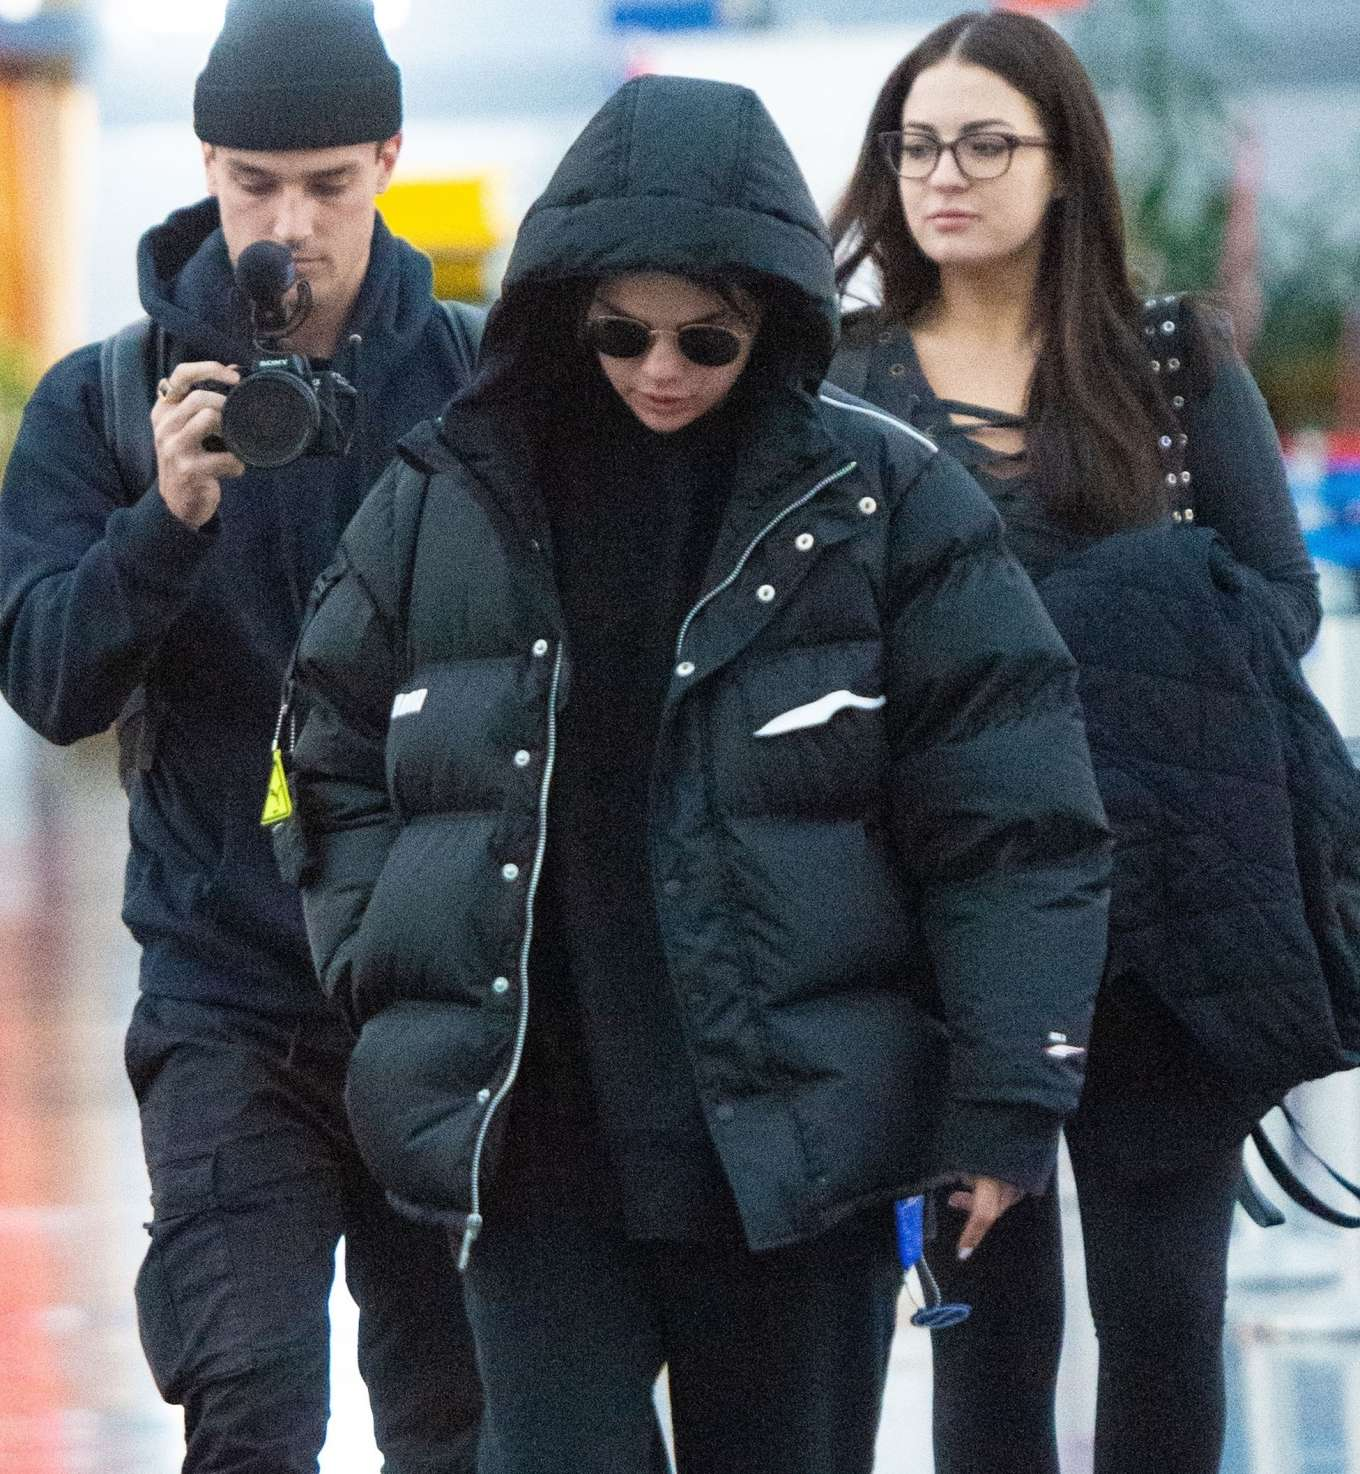 Selena Gomez, Puma  jacket, black  jacket, nylon, white Puma sneakers, black hoodie, hip length, extra long sleeves, front zip, oversized, black sunglasses, concealed button